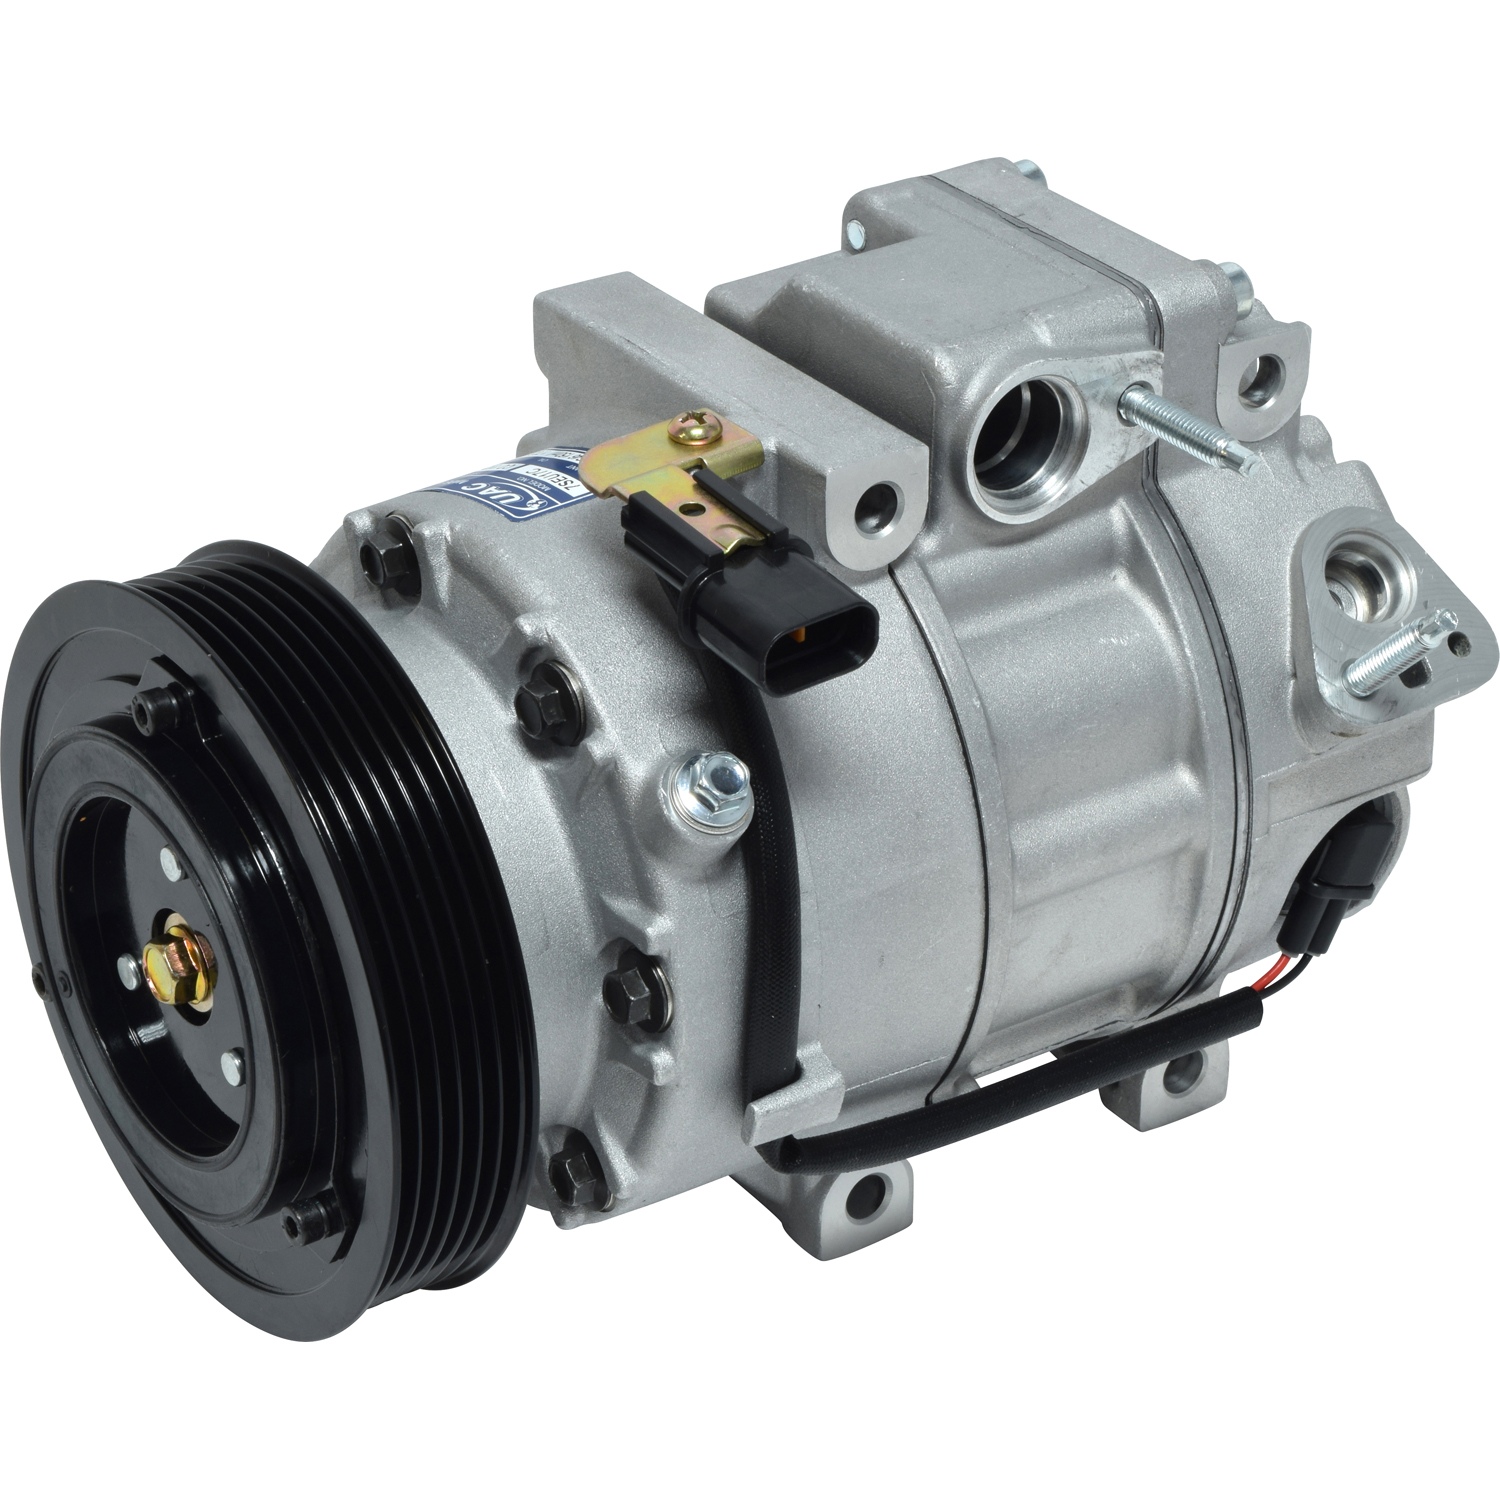 CO 11349C VS18E Compressor Assembly